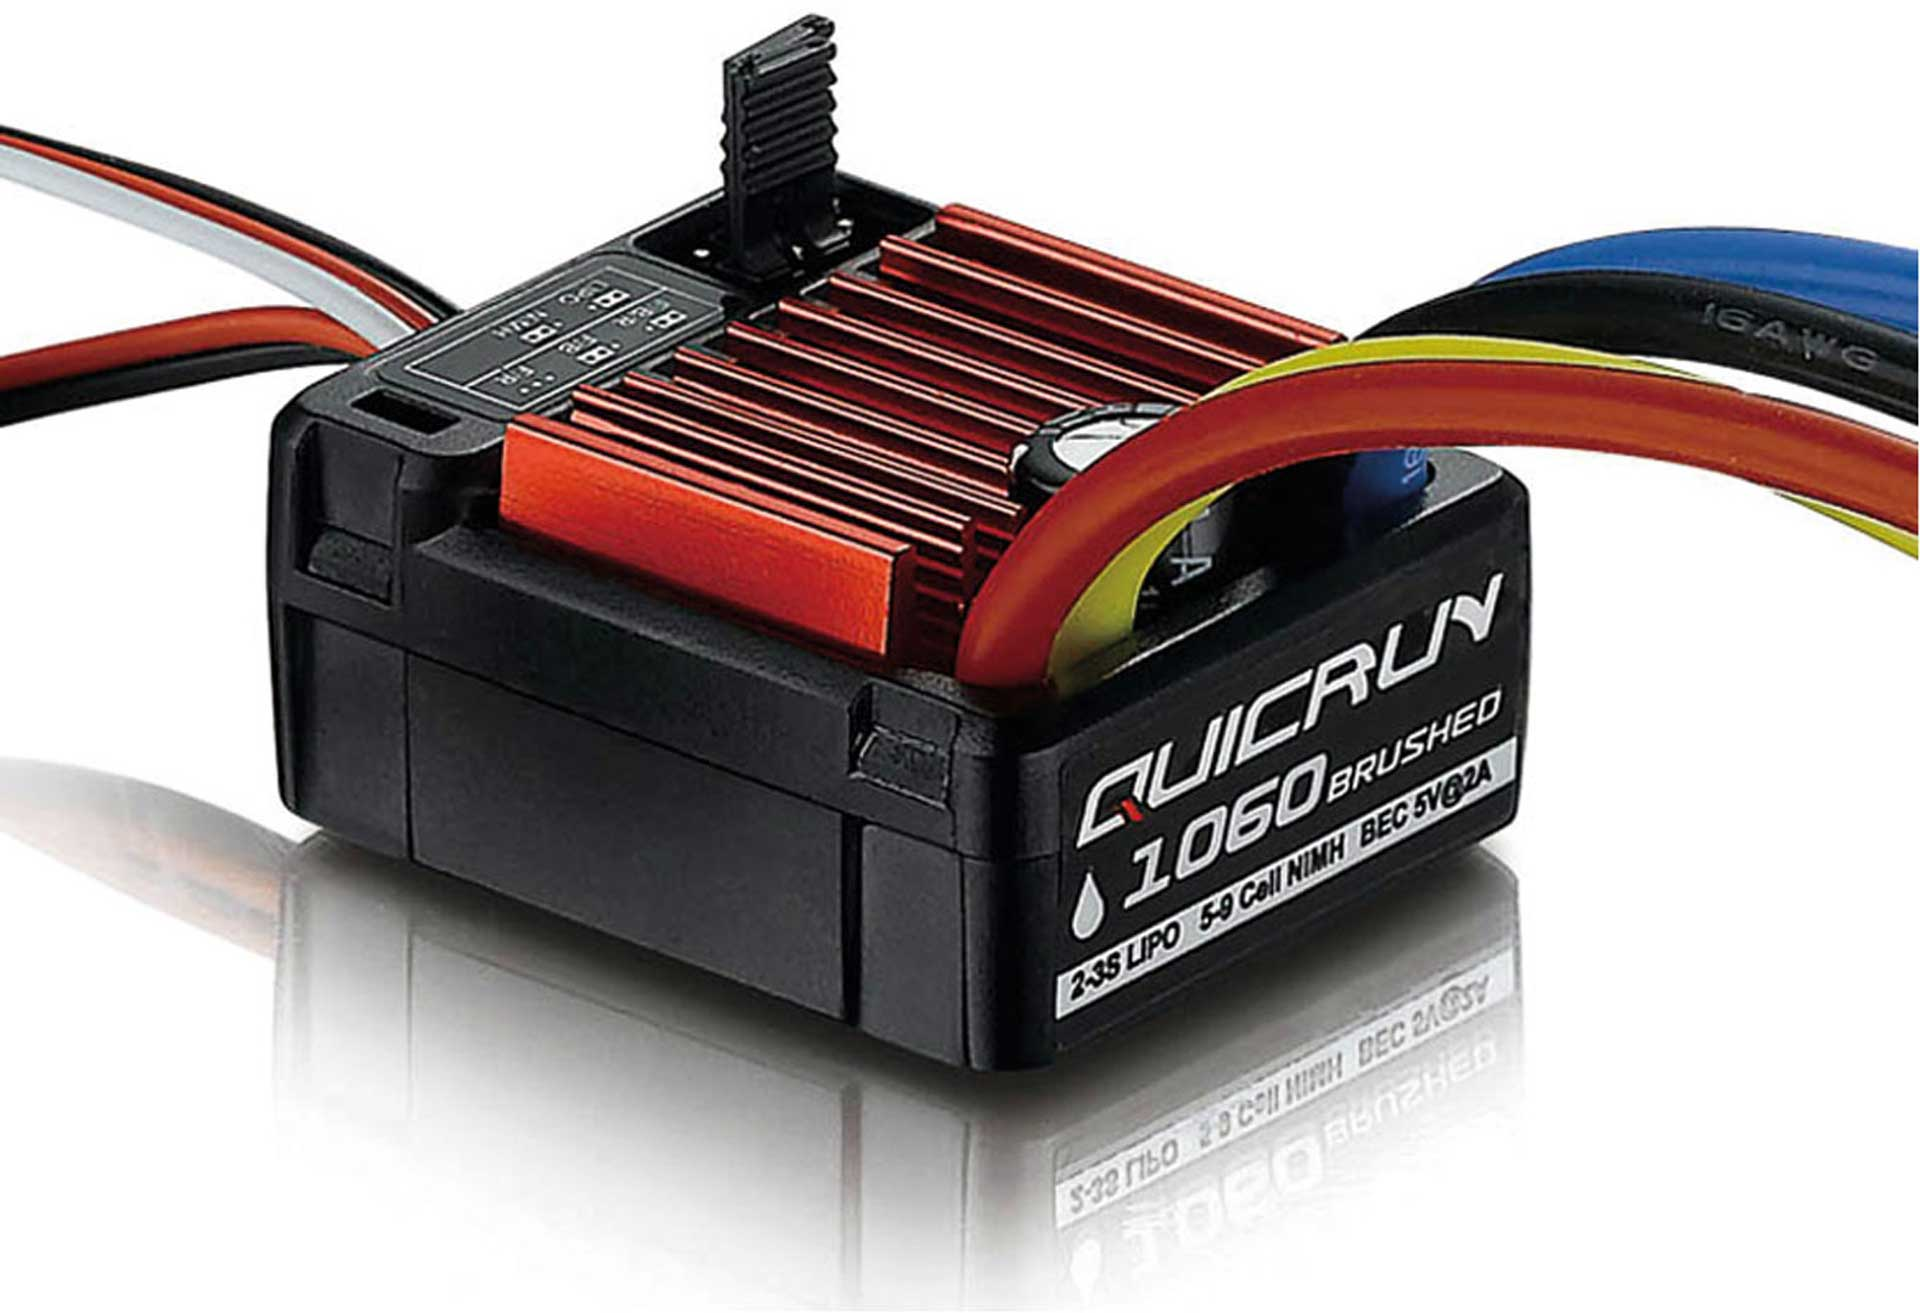 HOBBYWING SPEED CONTROLL QUICRUN WP1060 BRUSHED 60A 2-3S LIPO SBEC 1/10